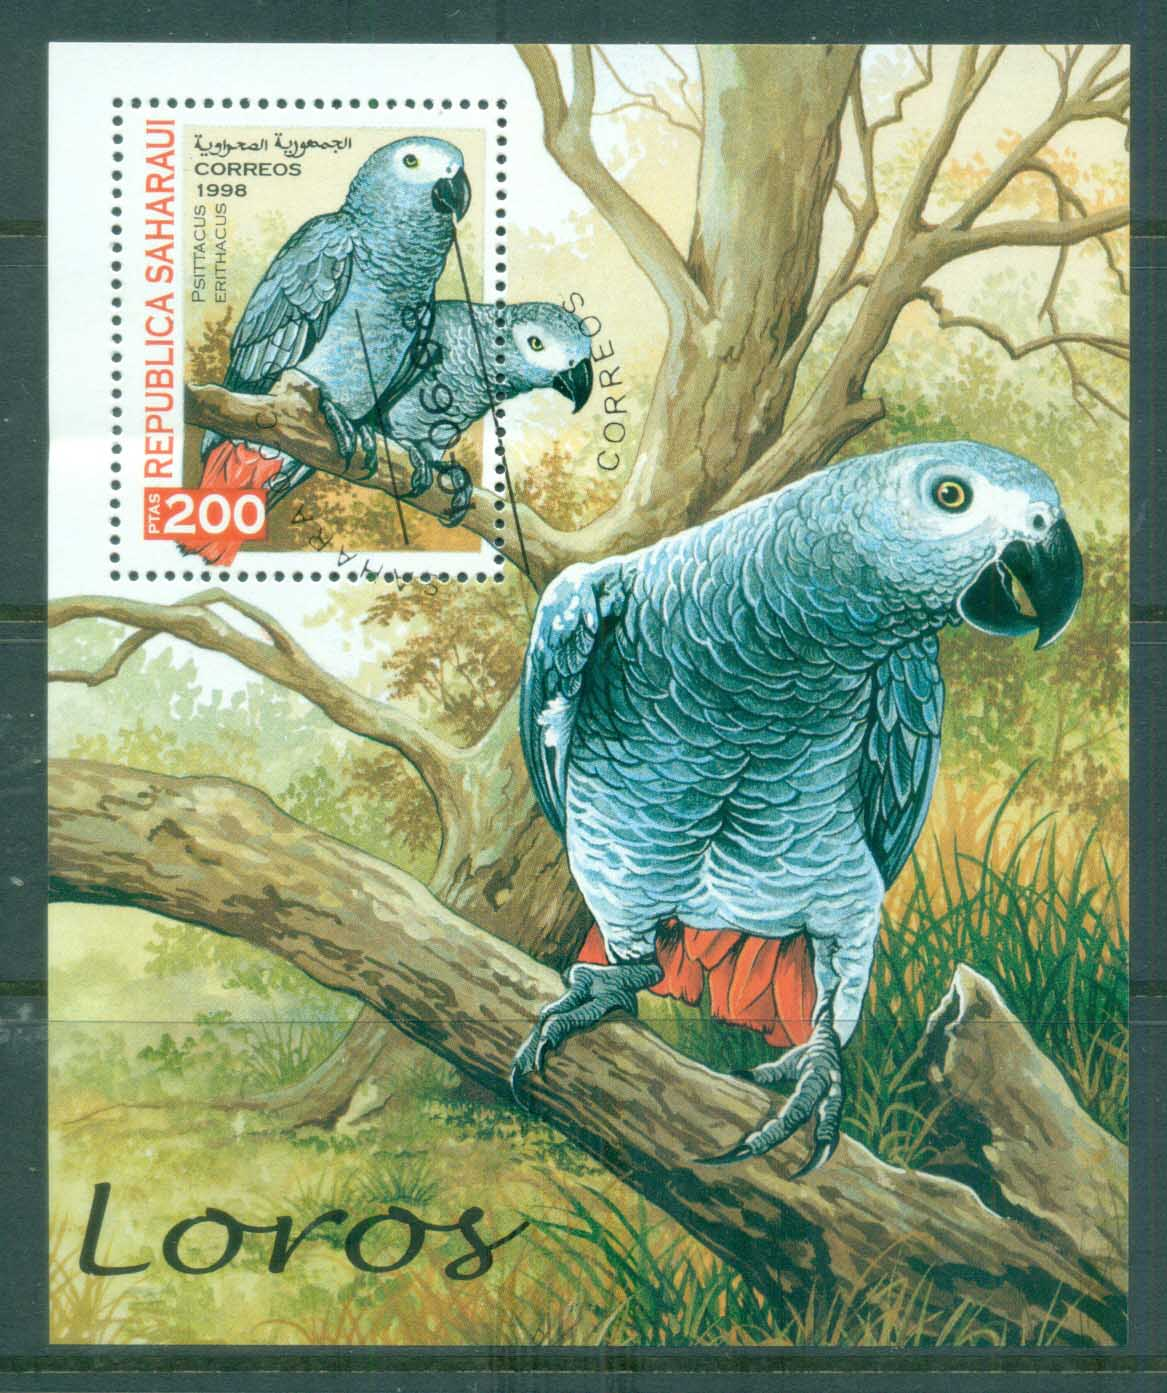 Sahara Occidental 1998 Birds, parrots MS CTO